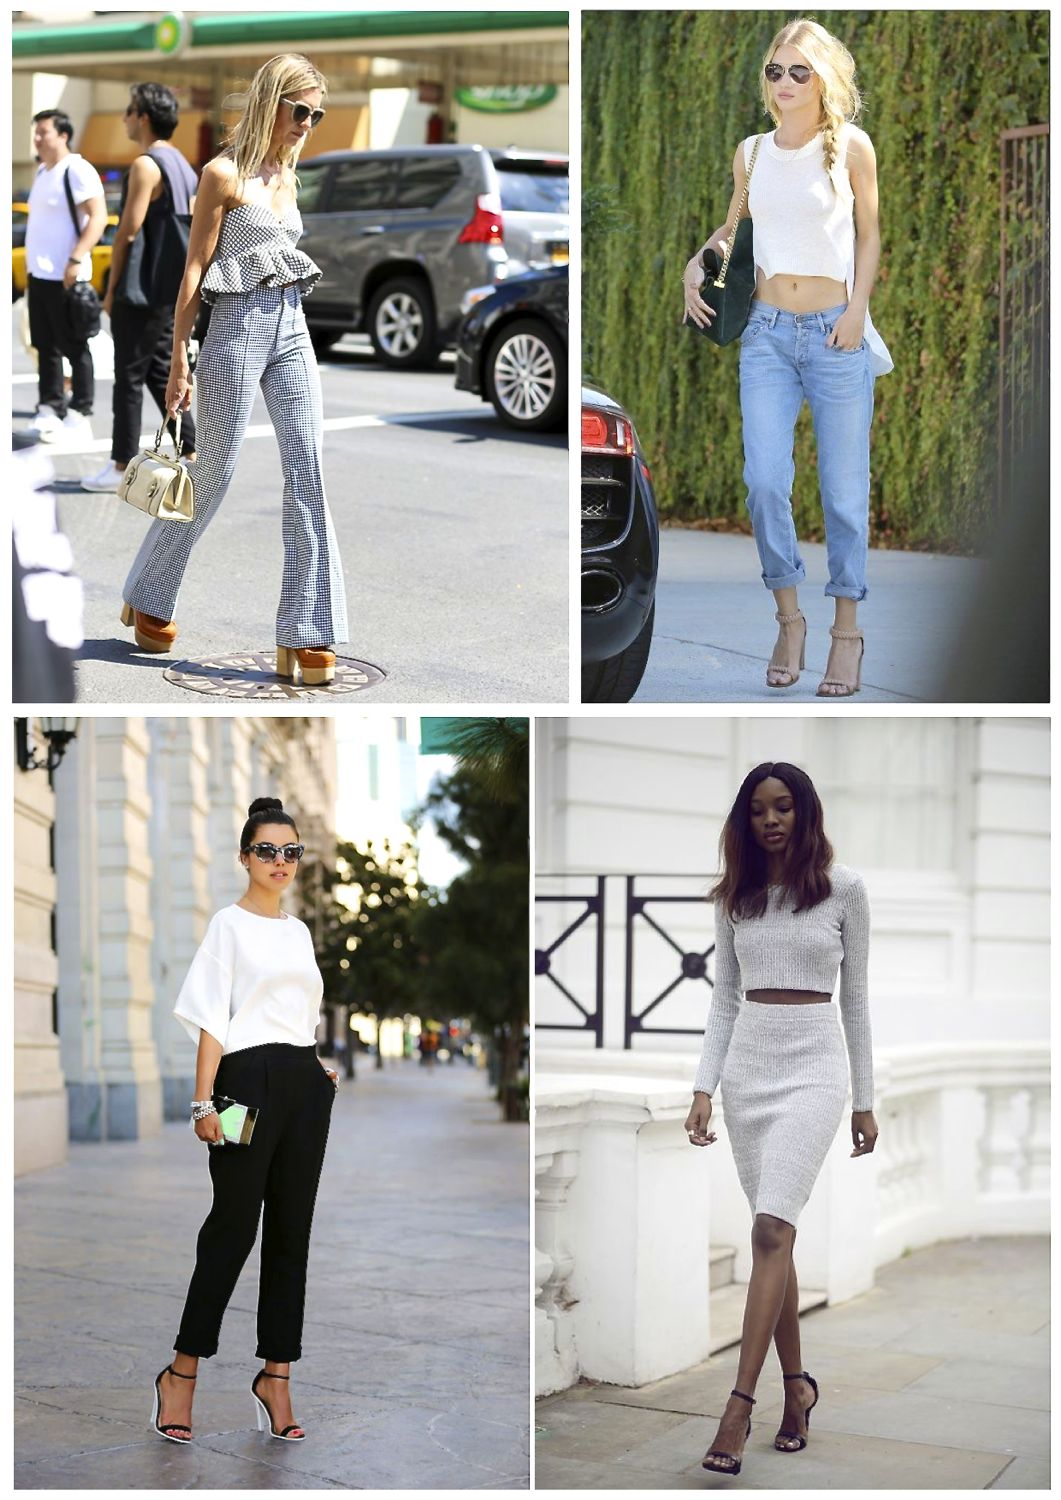 a1bf3c13afe 12 Street Style Pics On How To Wear Crop Tops - Style Barista